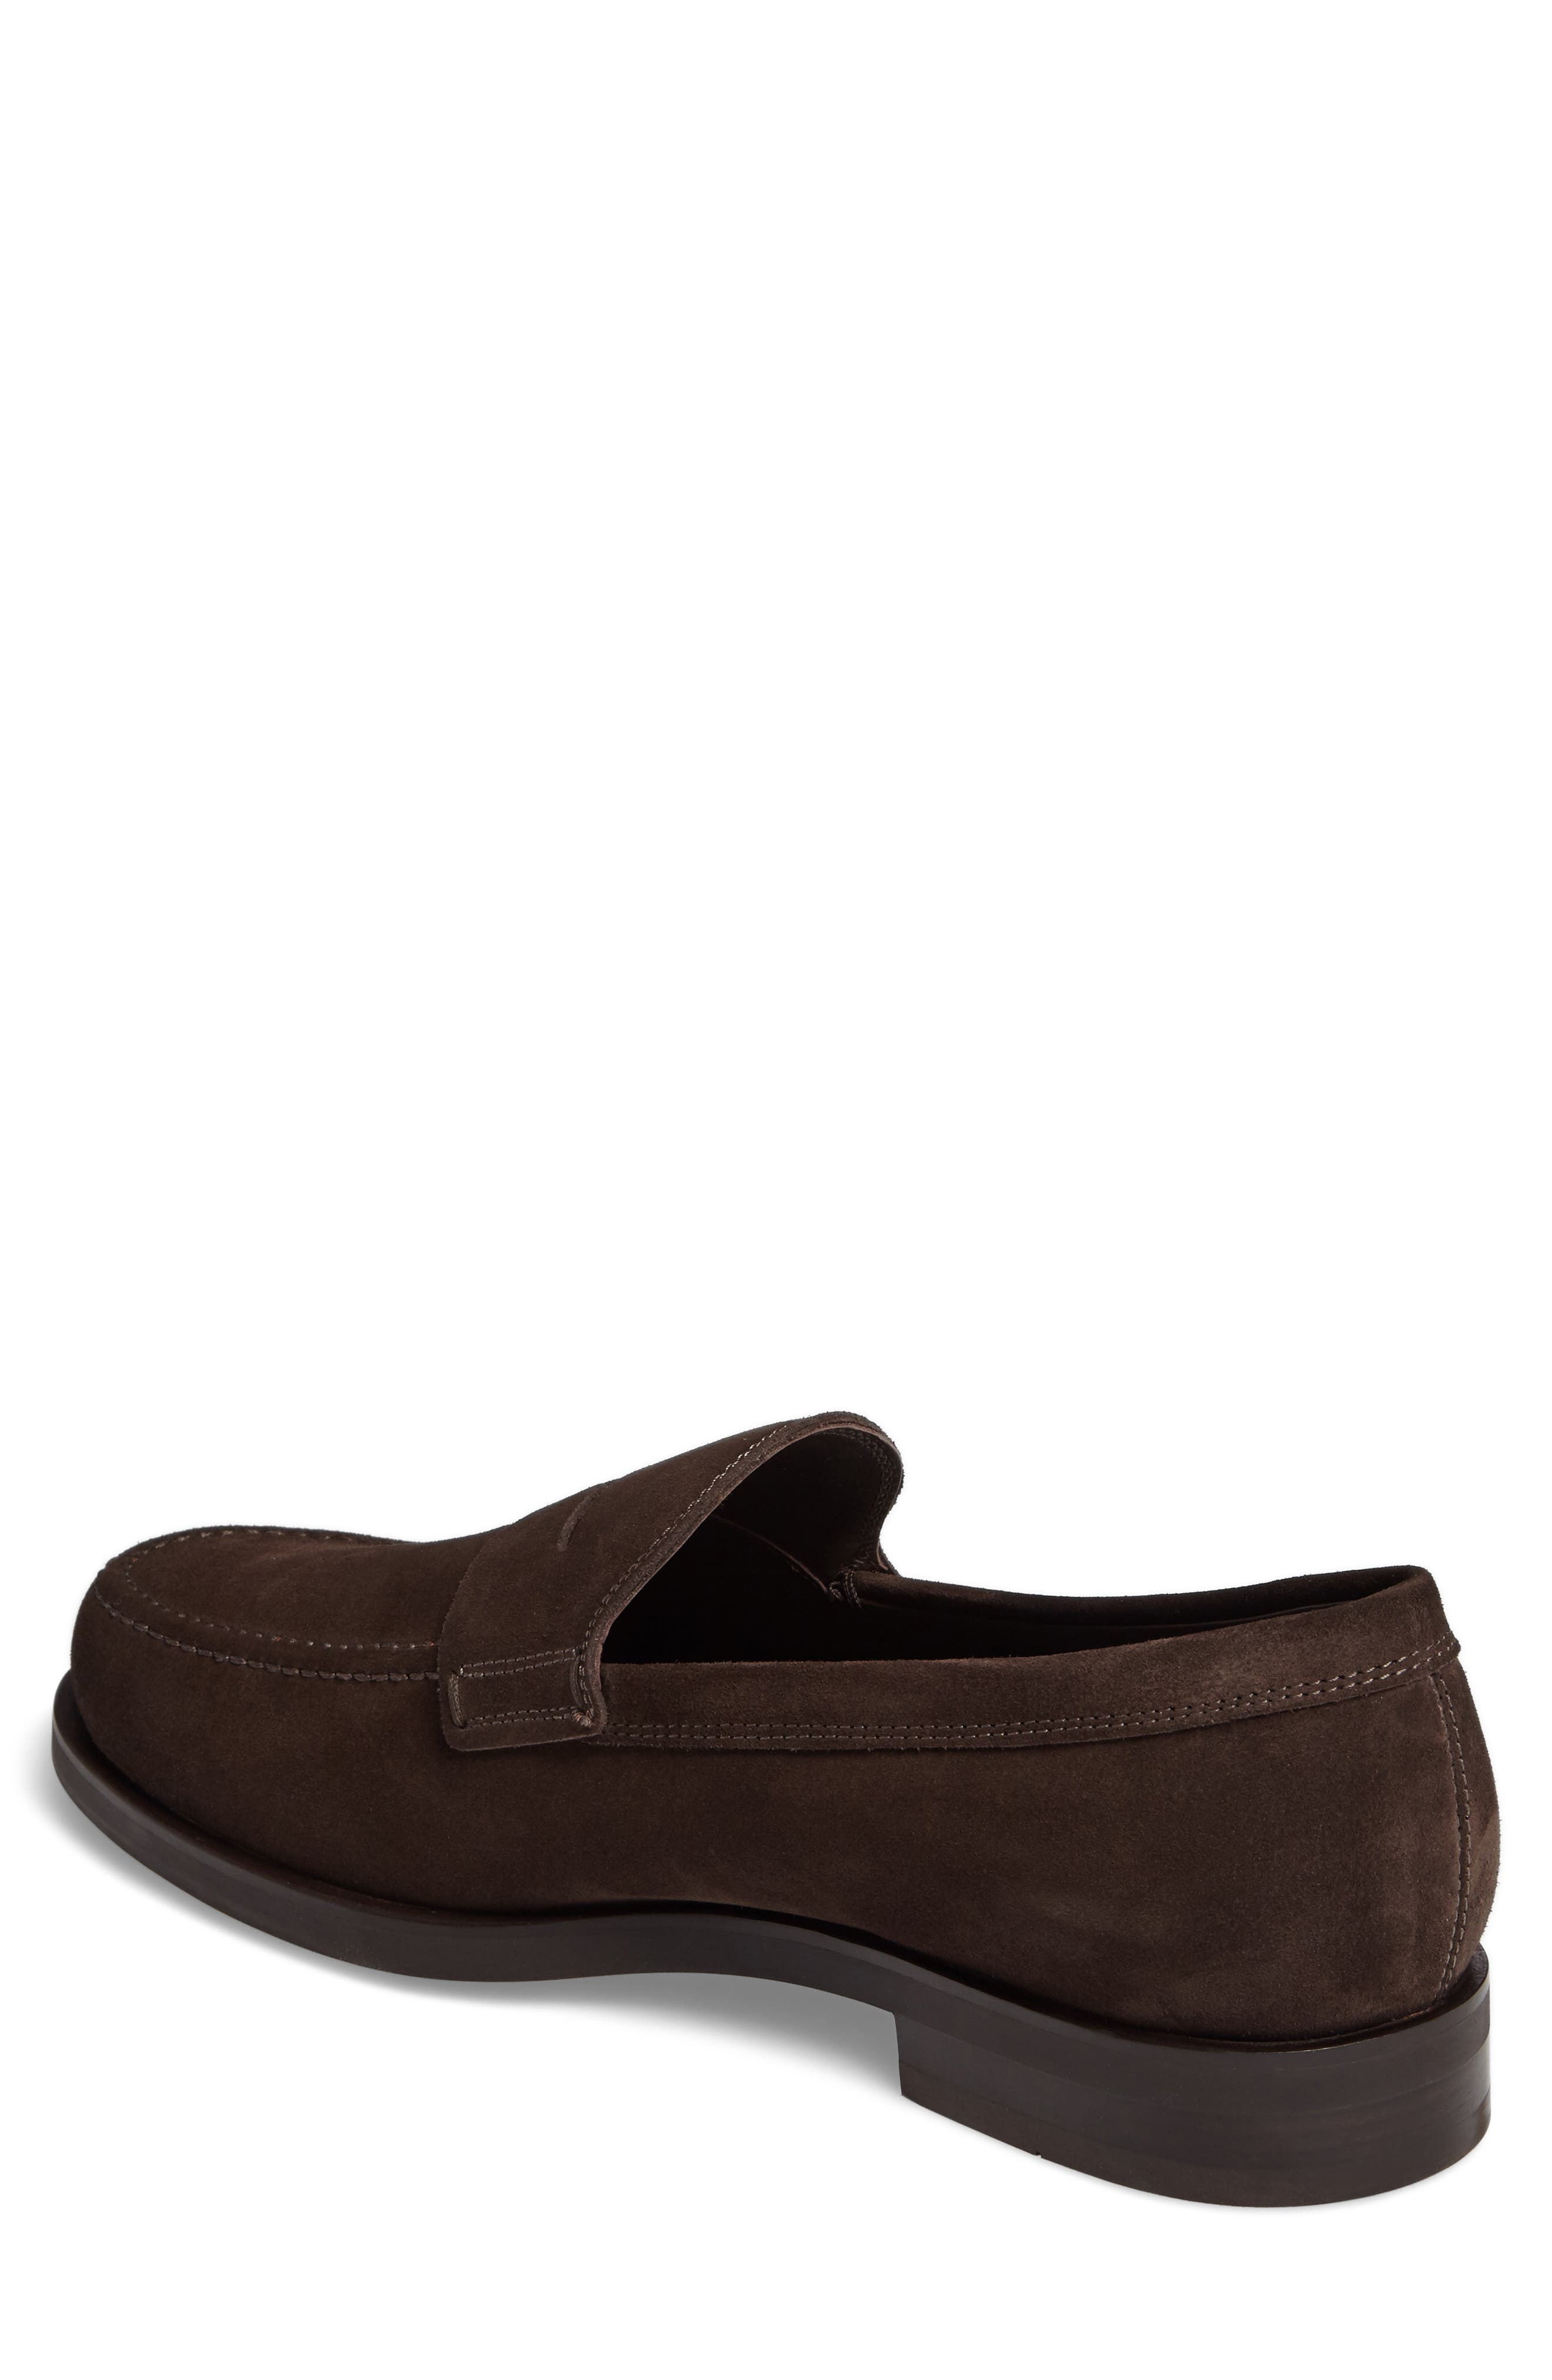 Penny Loafer,                             Alternate thumbnail 2, color,                             205